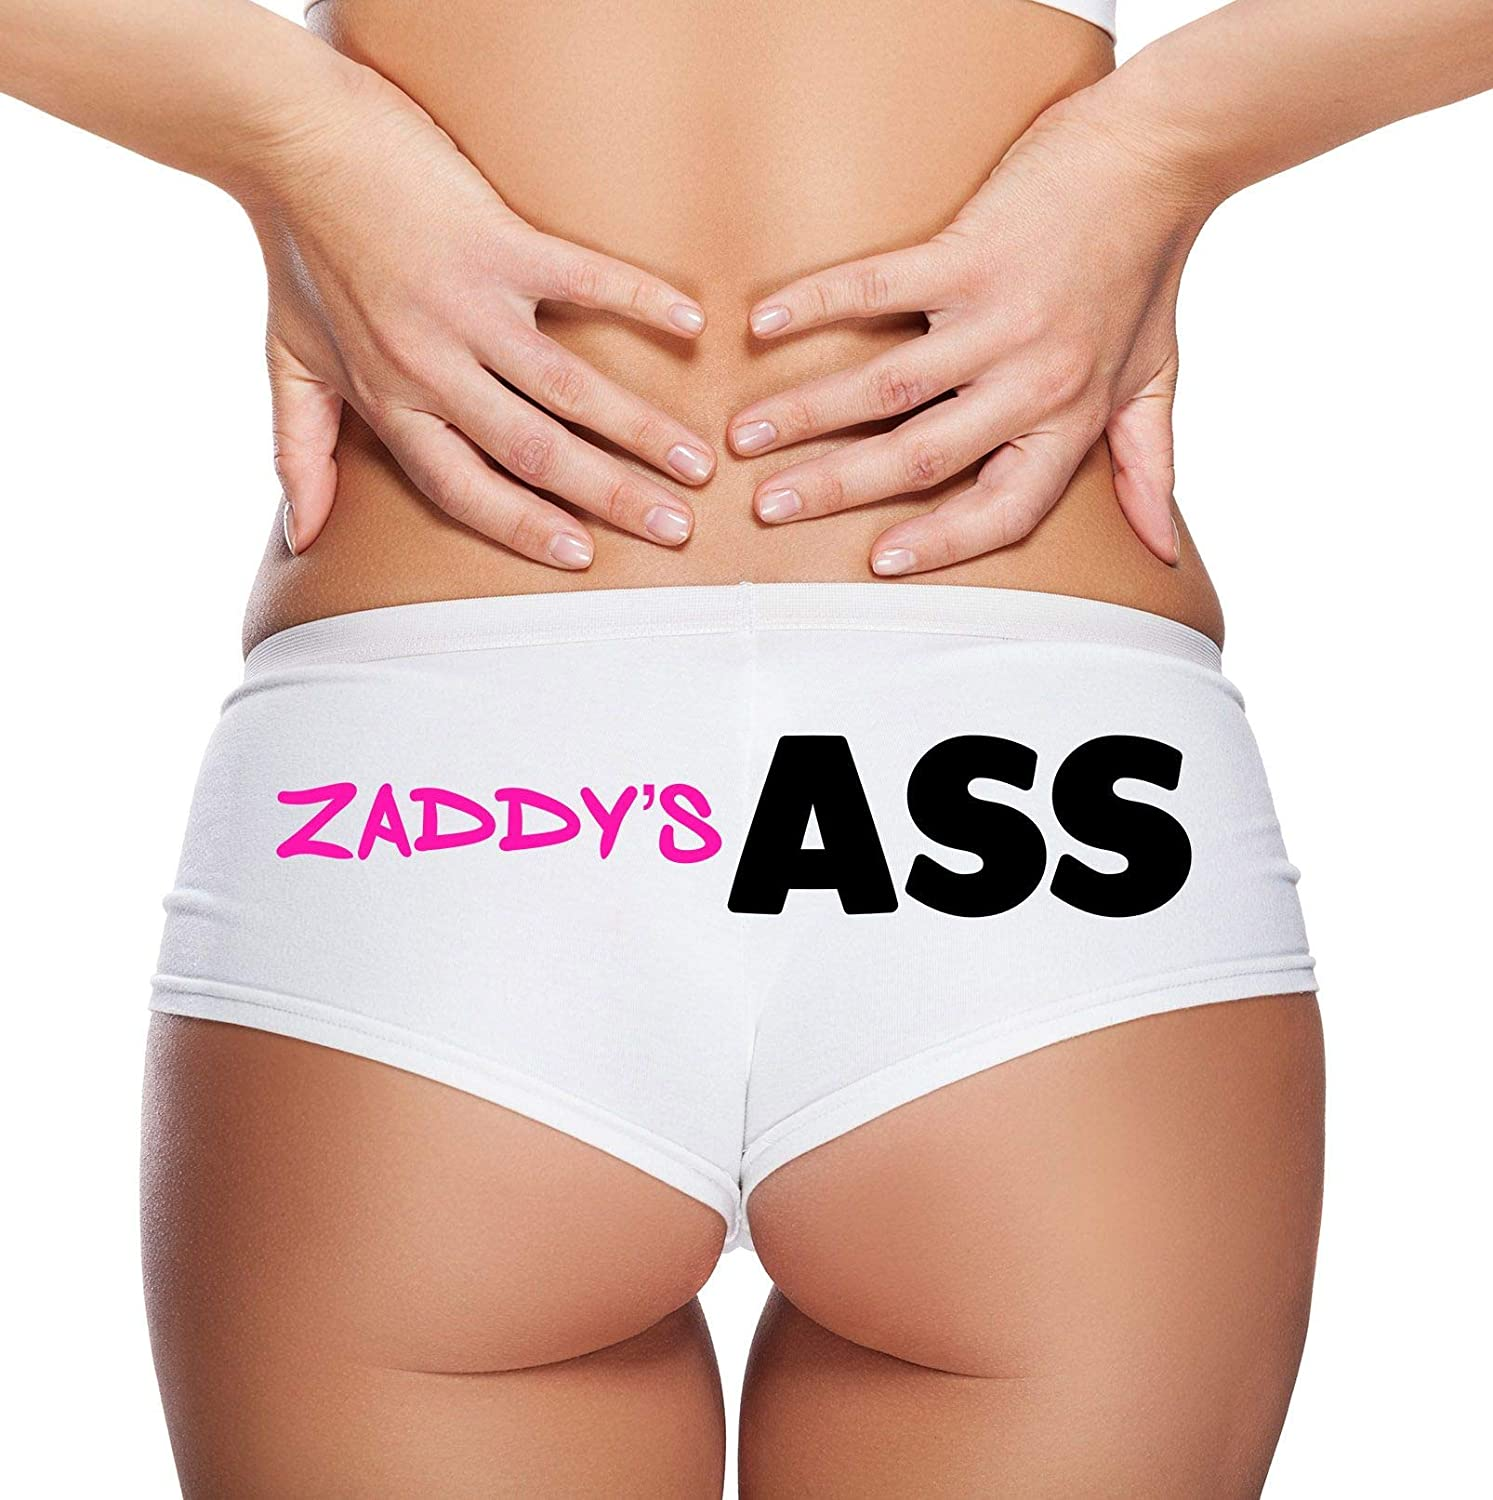 Zaddys Ass Novelty Hipster Panties for Women